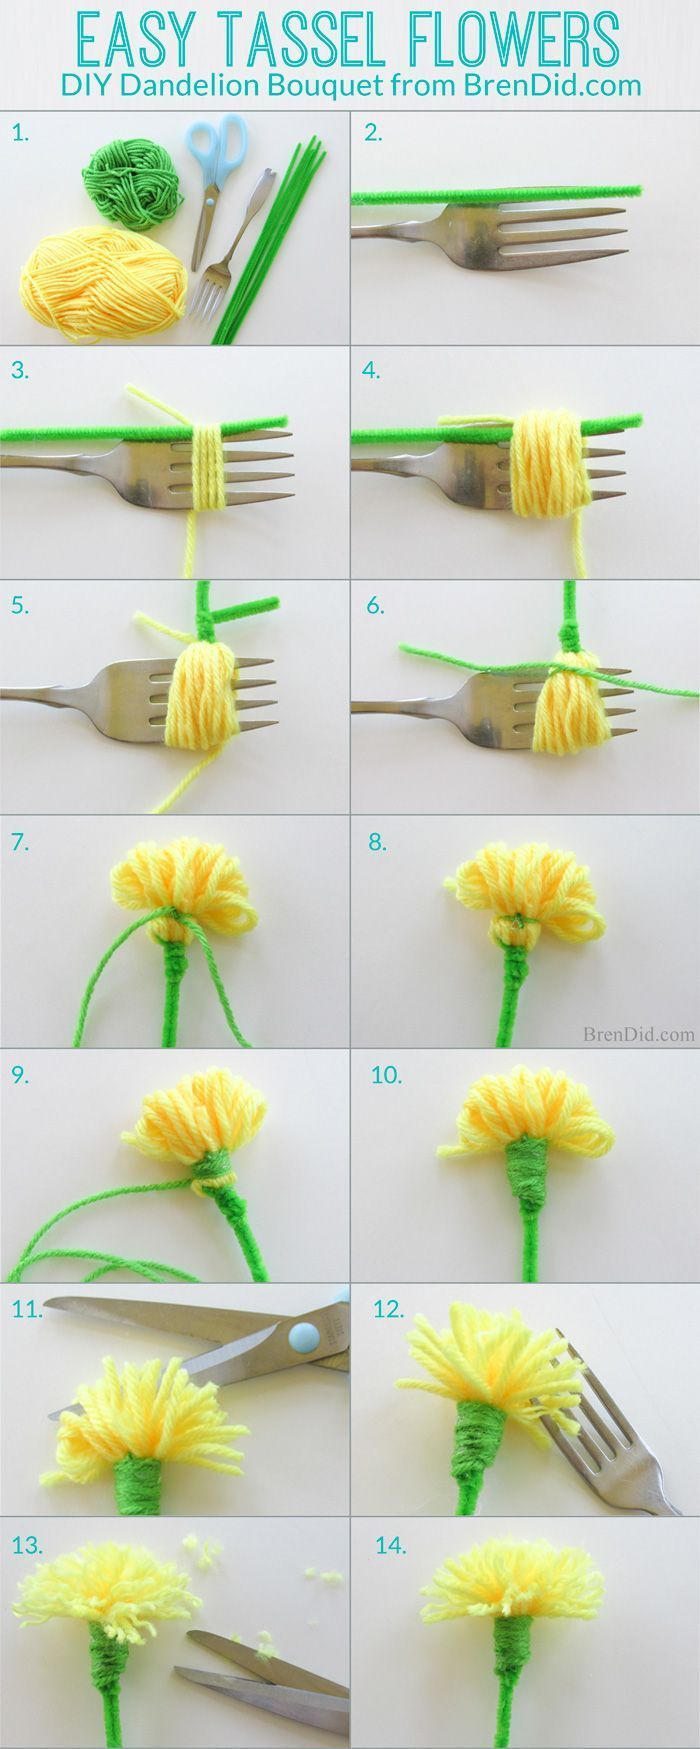 How to make tassel flowers - Make an easy DIY dandelion bouquest with yarn and…